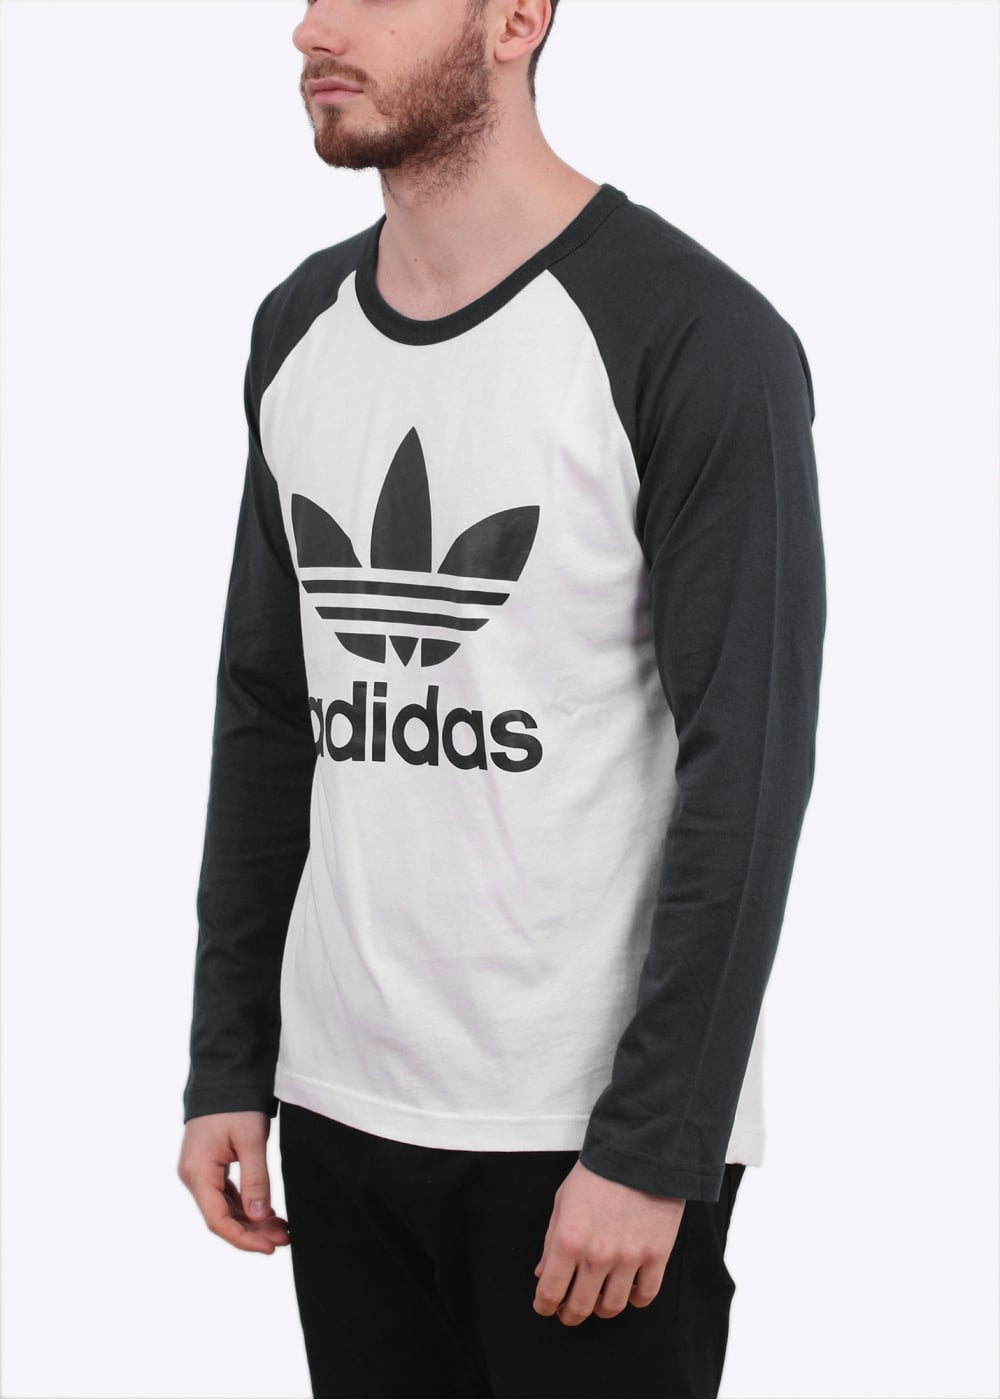 Adidas originals adi trefoil long sleeve tee white black for Adidas long sleeve t shirt with trefoil logo